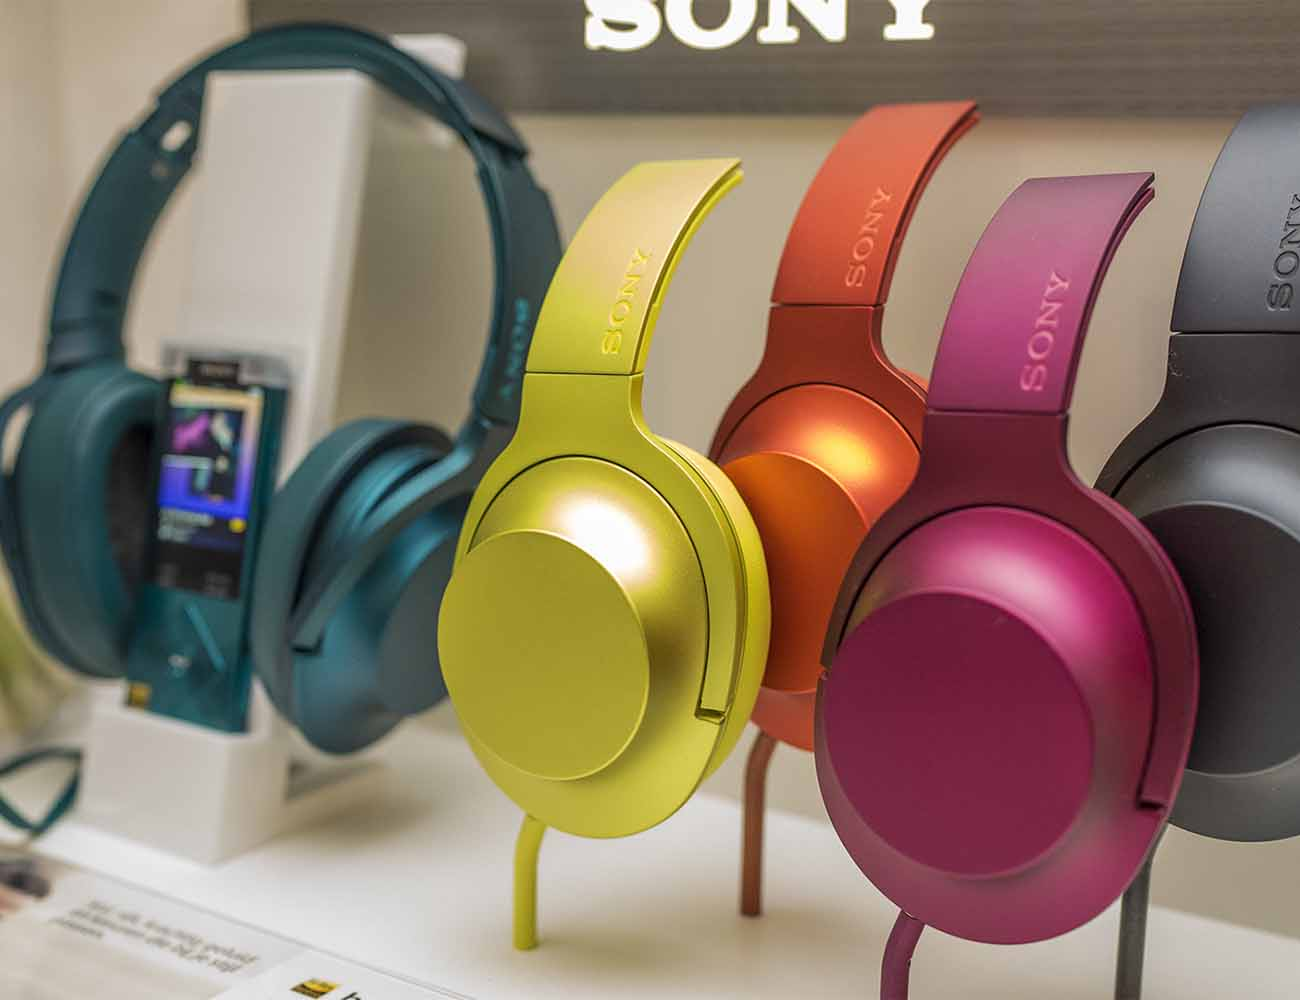 H.ear Headphones by Sony – High-Resolution Audio Quality With Striking Design